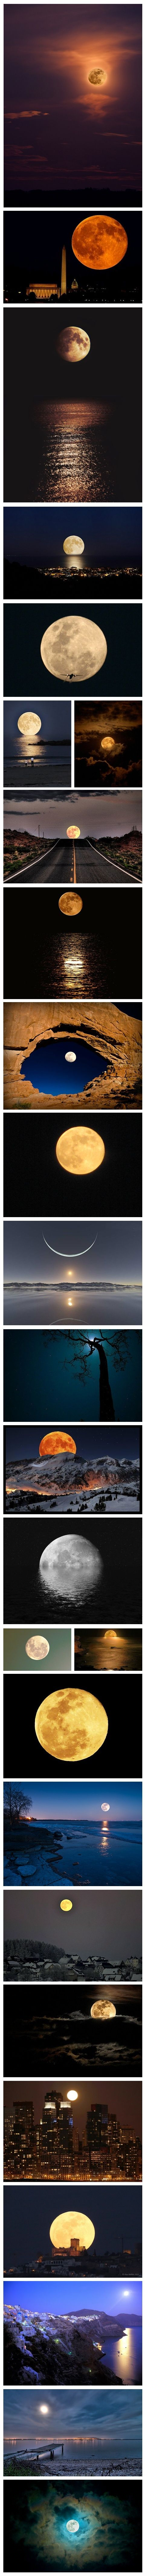 best images about moonrises on pinterest beautiful moon juno